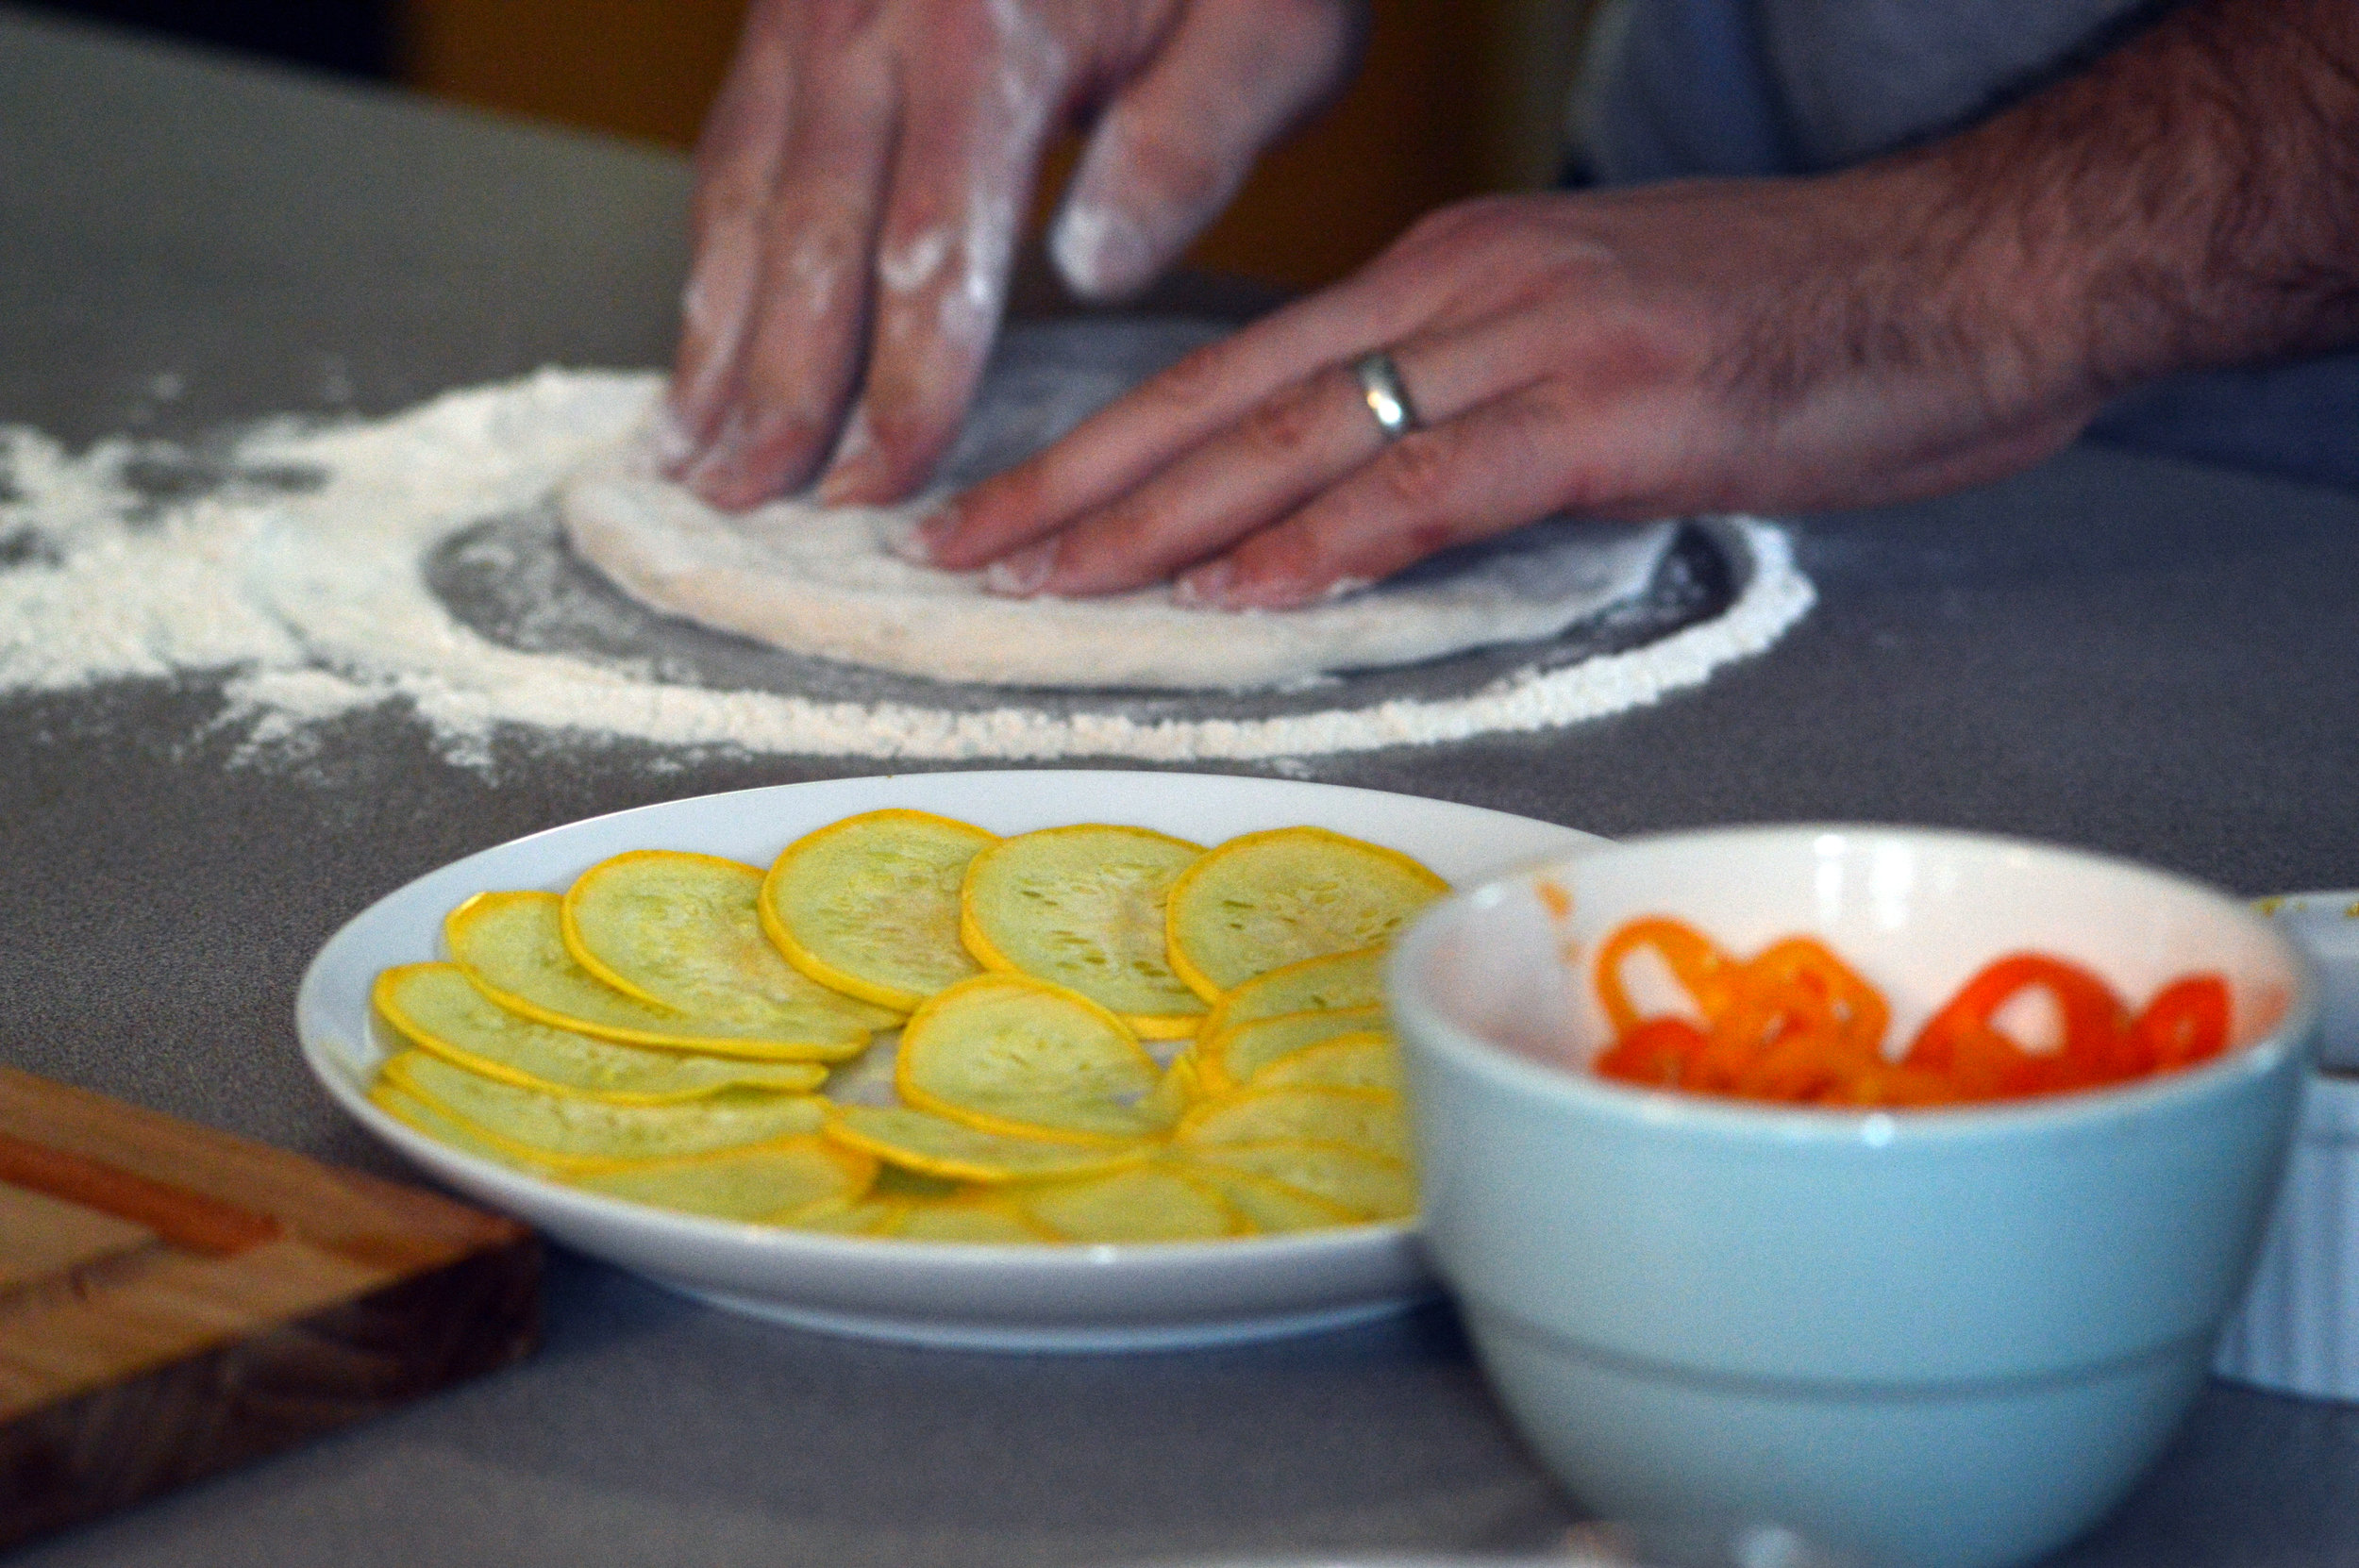 Preparing the dough for our Veggie Pizza